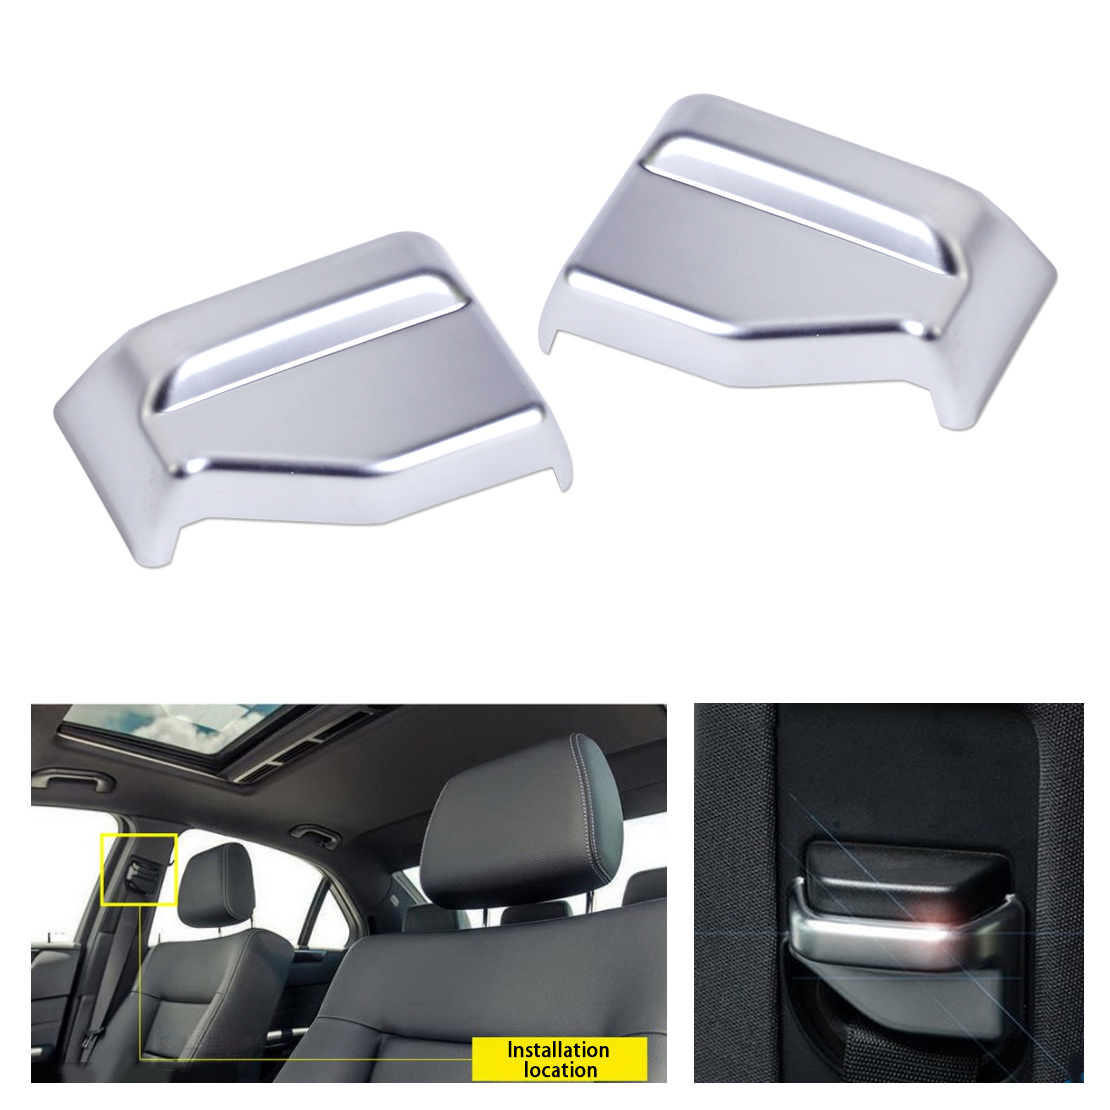 2pcs ABS Chrome Interior B Pillar Seat Safety Belt Frame Cover Trim for Mercedes Benz E Class W212 2010 2011 2012 2013 2014 2015 6x 3d gloss twill carbon fiber b pillar trim for mercedes benz fit e class w212 09 14